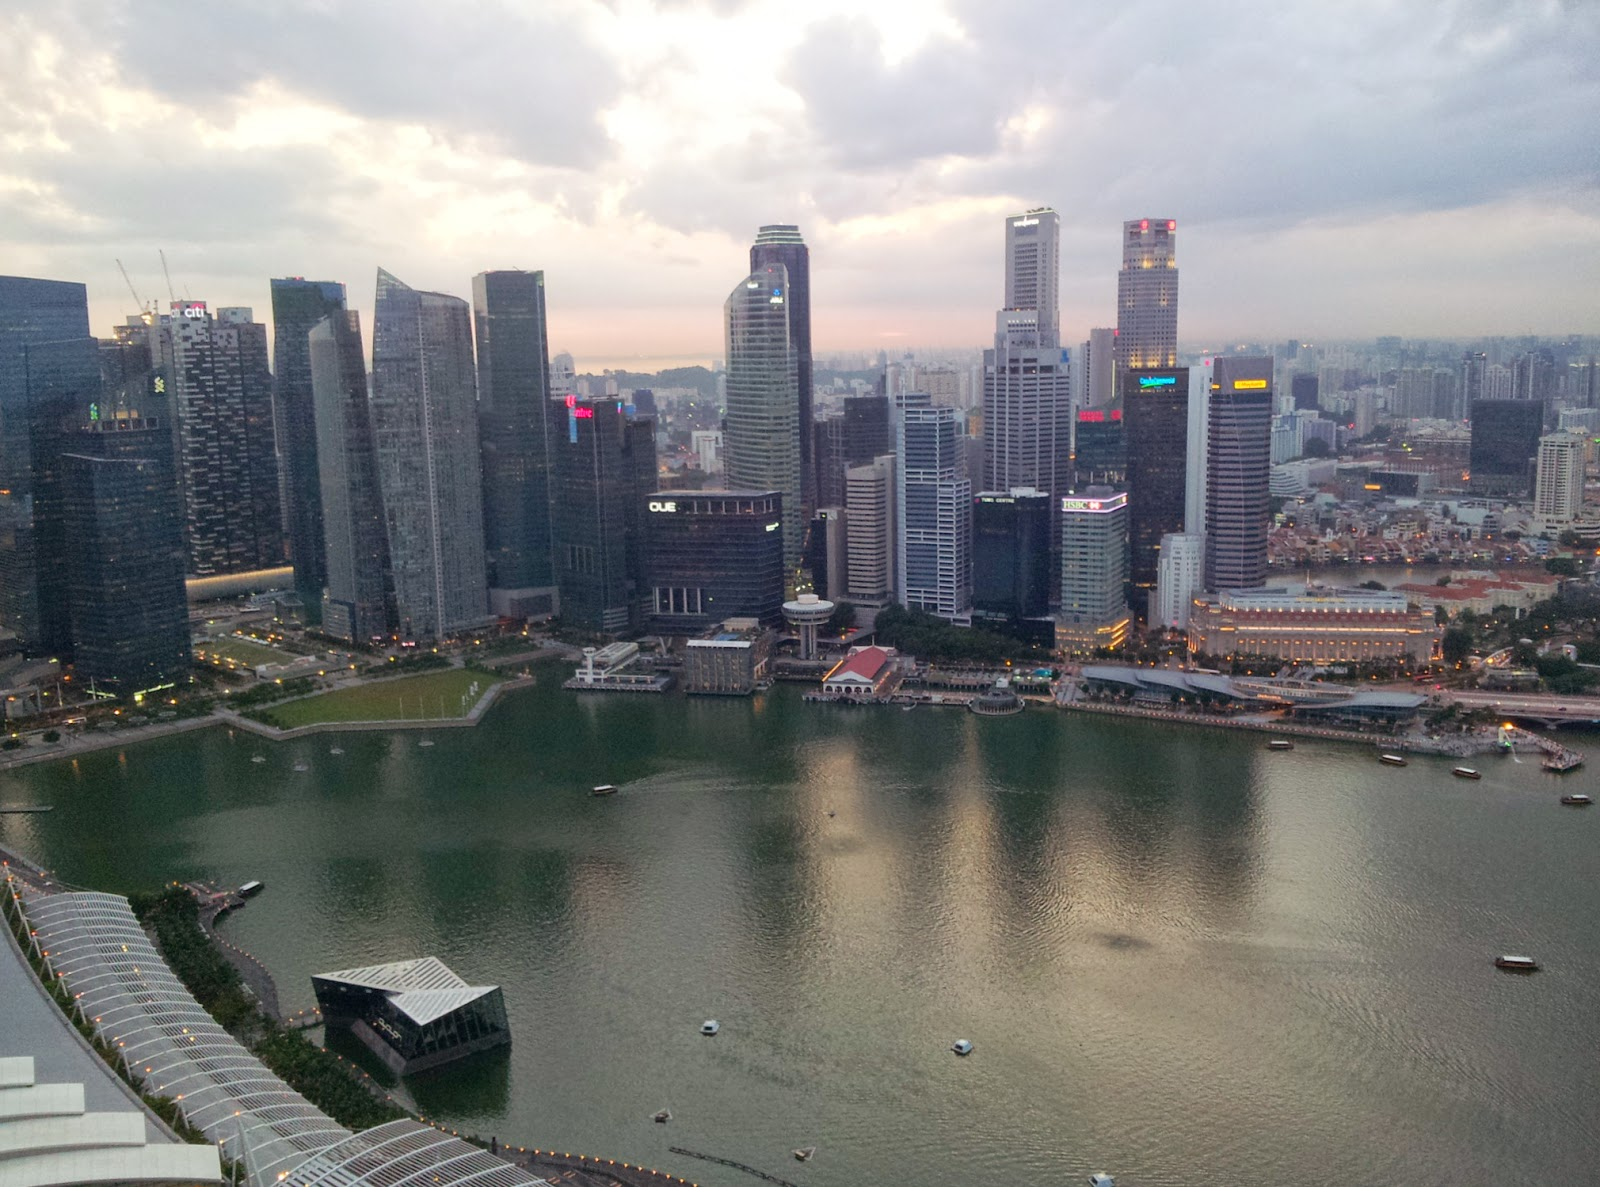 View of Singapore's city skyline from Skypark Marina Bay Sands